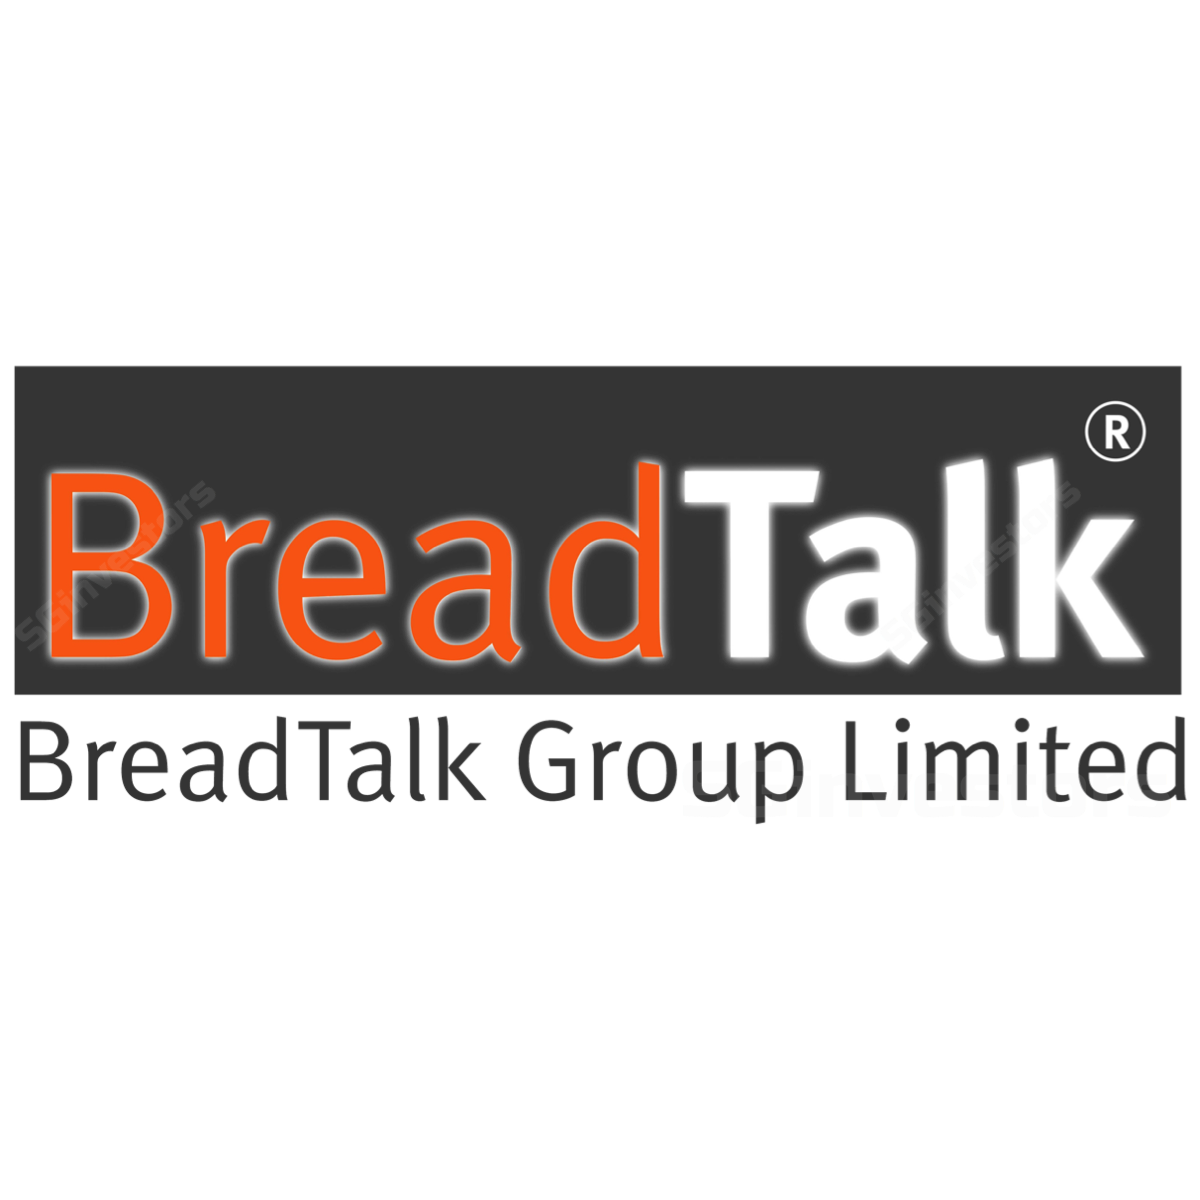 BreadTalk Group - RHB Invest 2018-05-04: Waiting For The Next Leg Of Growth